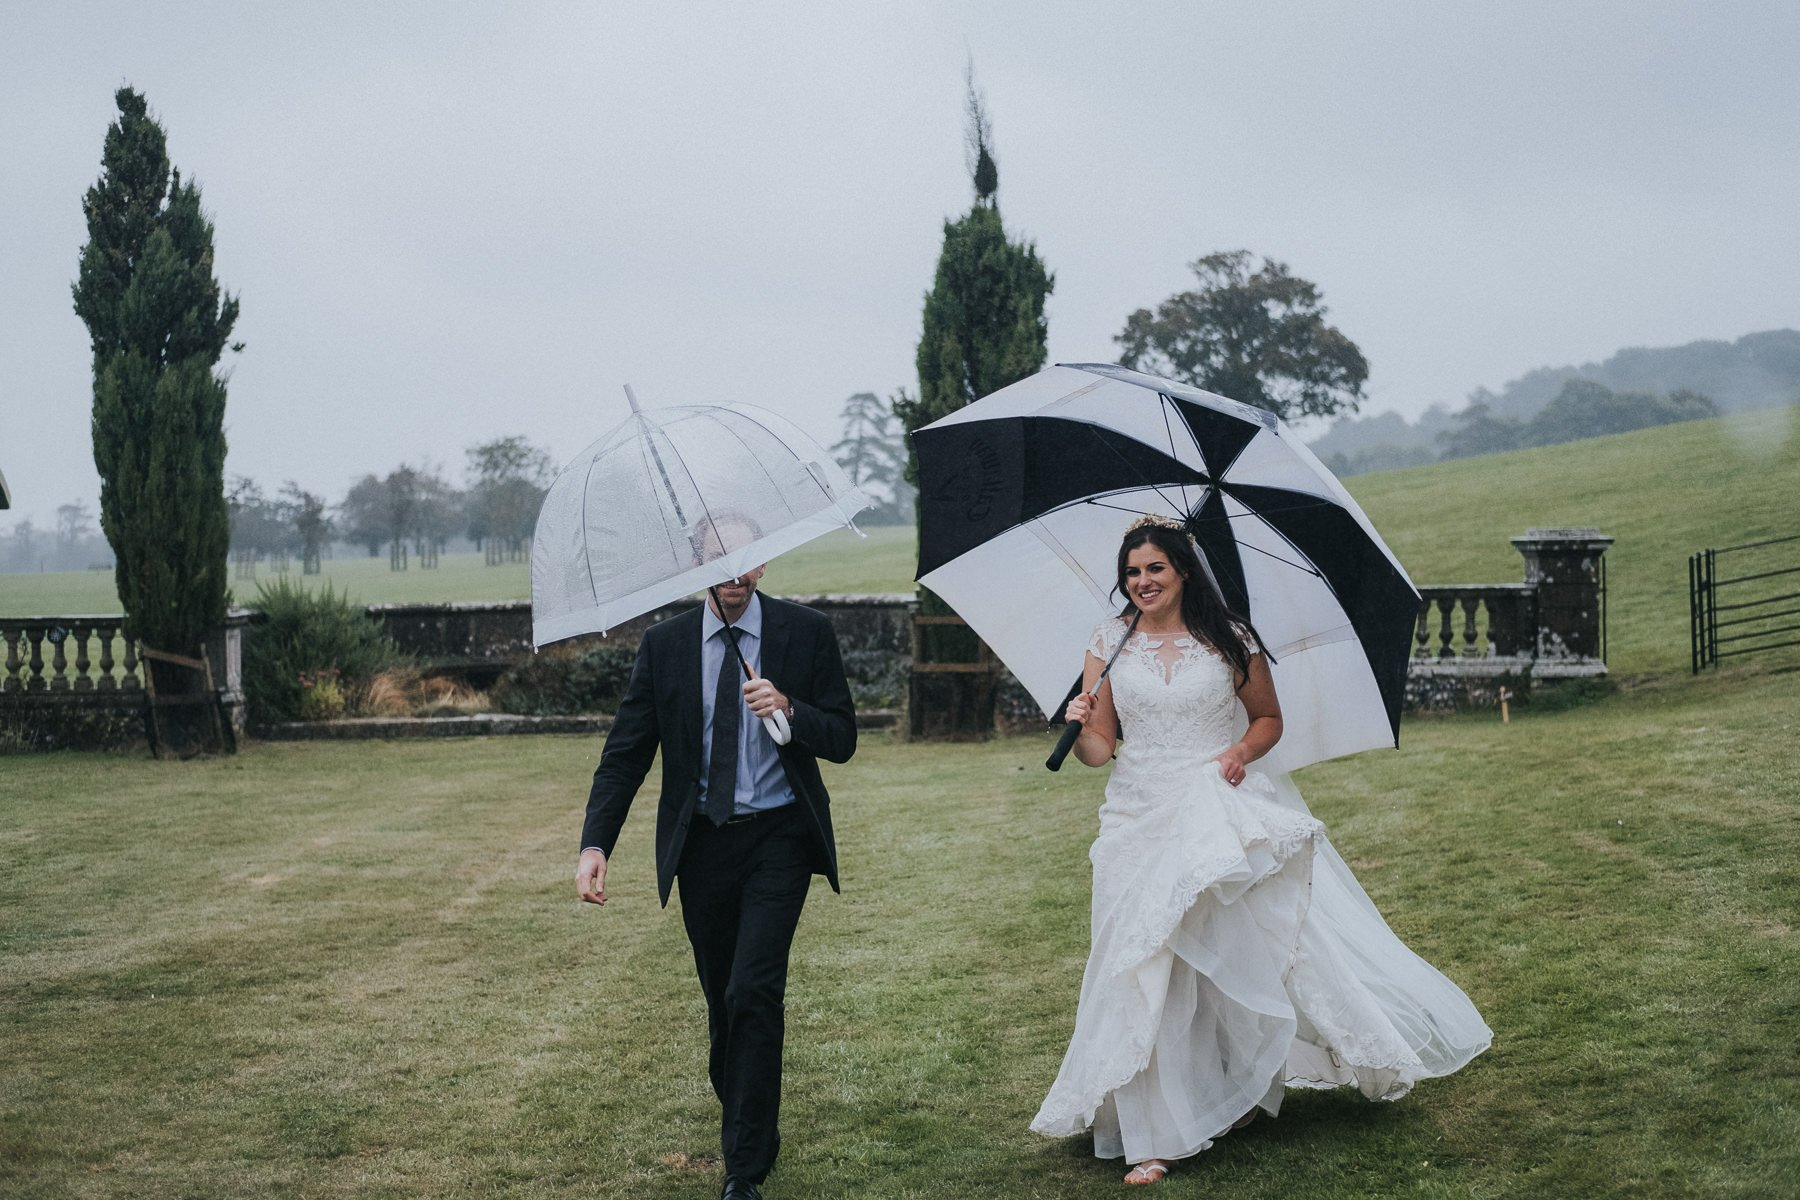 firle-place-wedding-photography-fazackarley-milly-chris-115